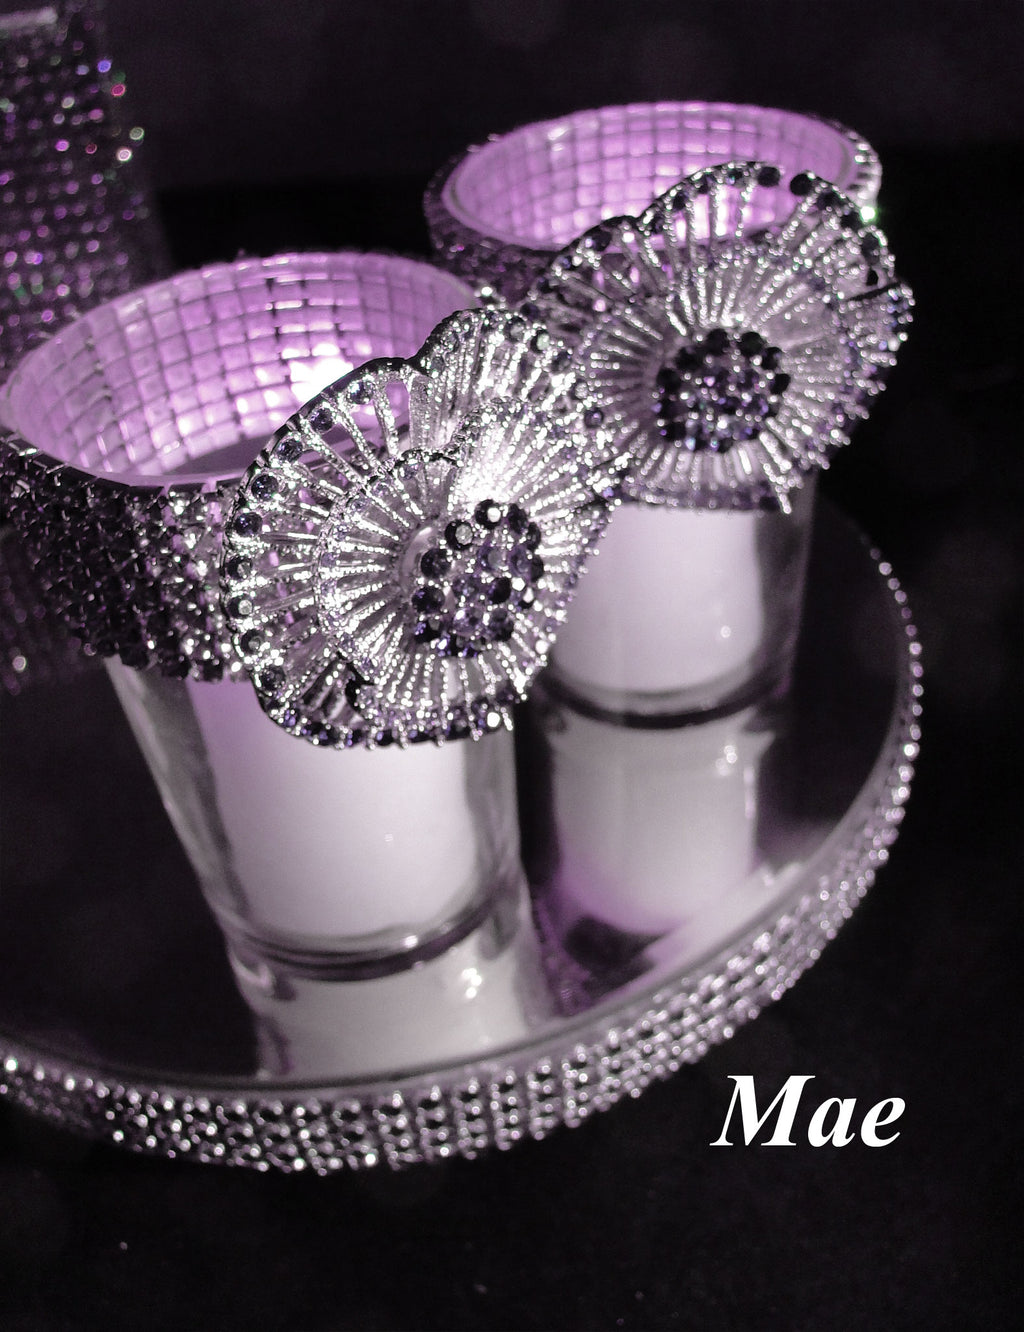 Purple Votive Holders (sold individually)